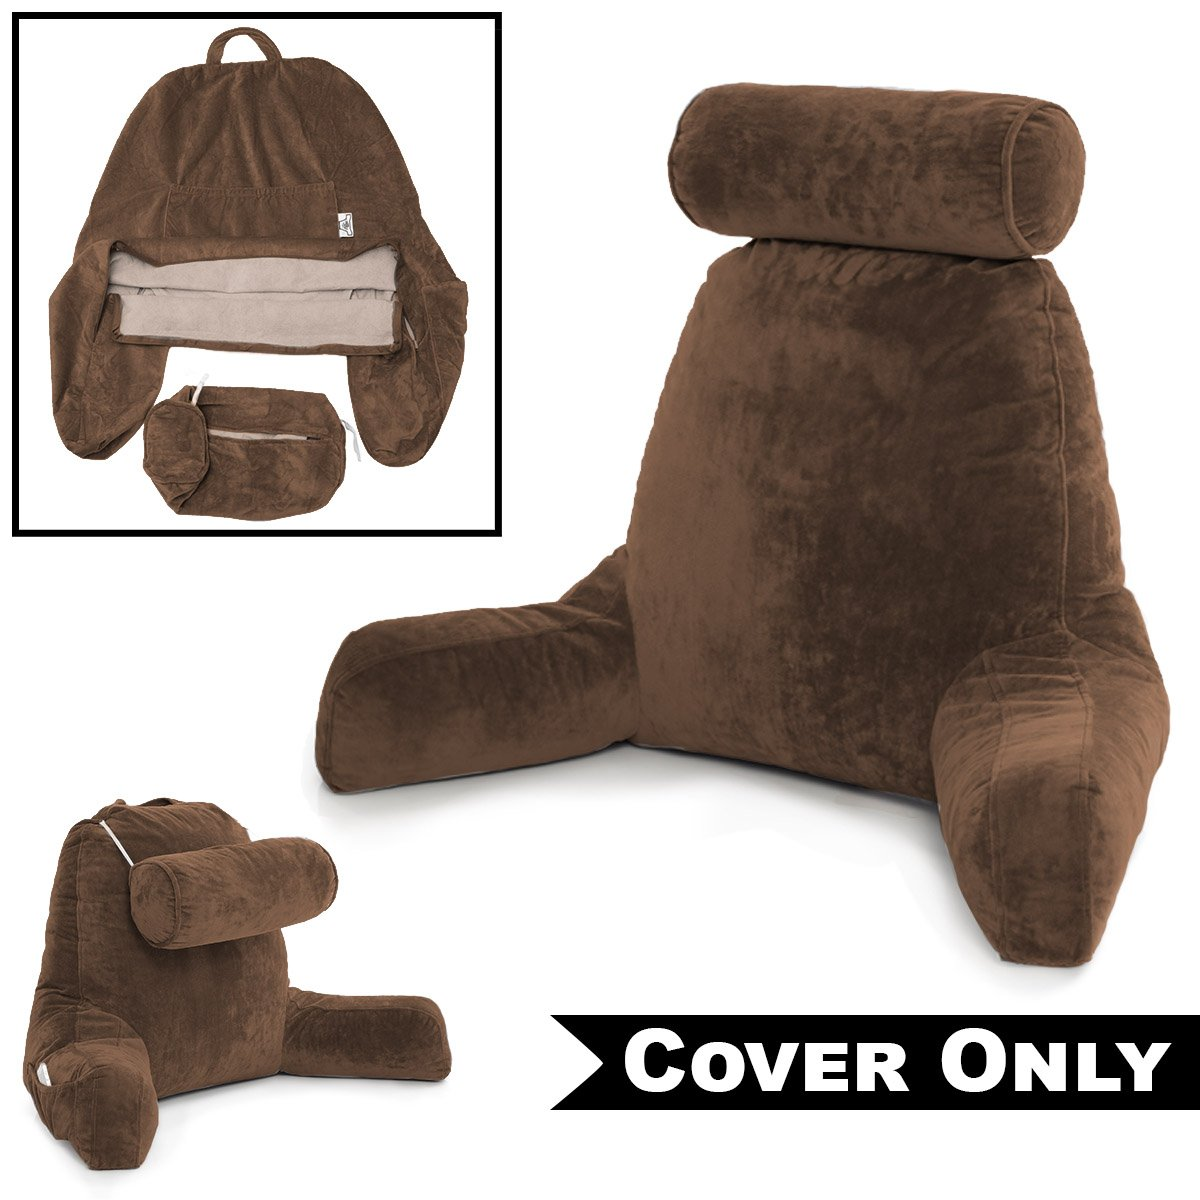 Husband Pillow Chocolate Cover ONLY - for The Bedrest Cover Set - Support Bed Backrest Covers, Micro Plush Cover Including Detachable Neck Roll Pillow Cover